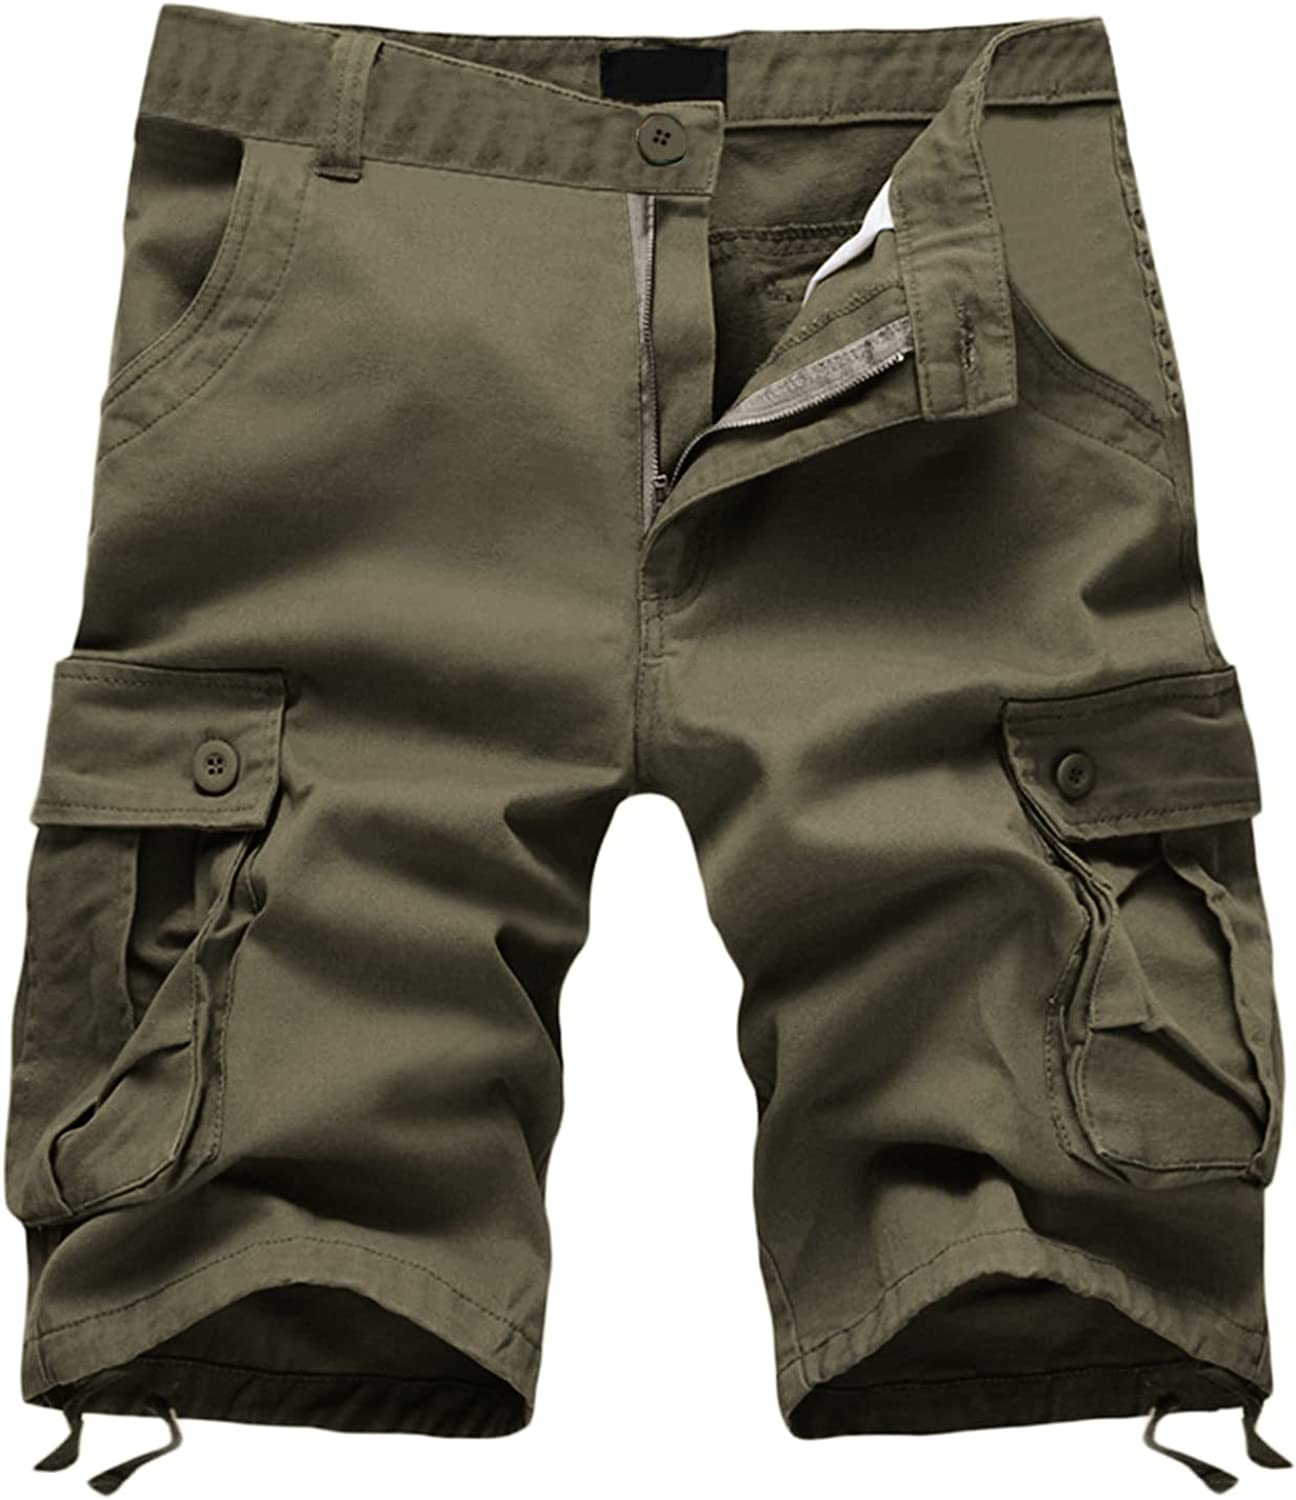 JSPOYOU Men's Cargo Shorts Elastic Relaxed Fit Max 81% OFF Waist Mesa Mall Multi-Pocke